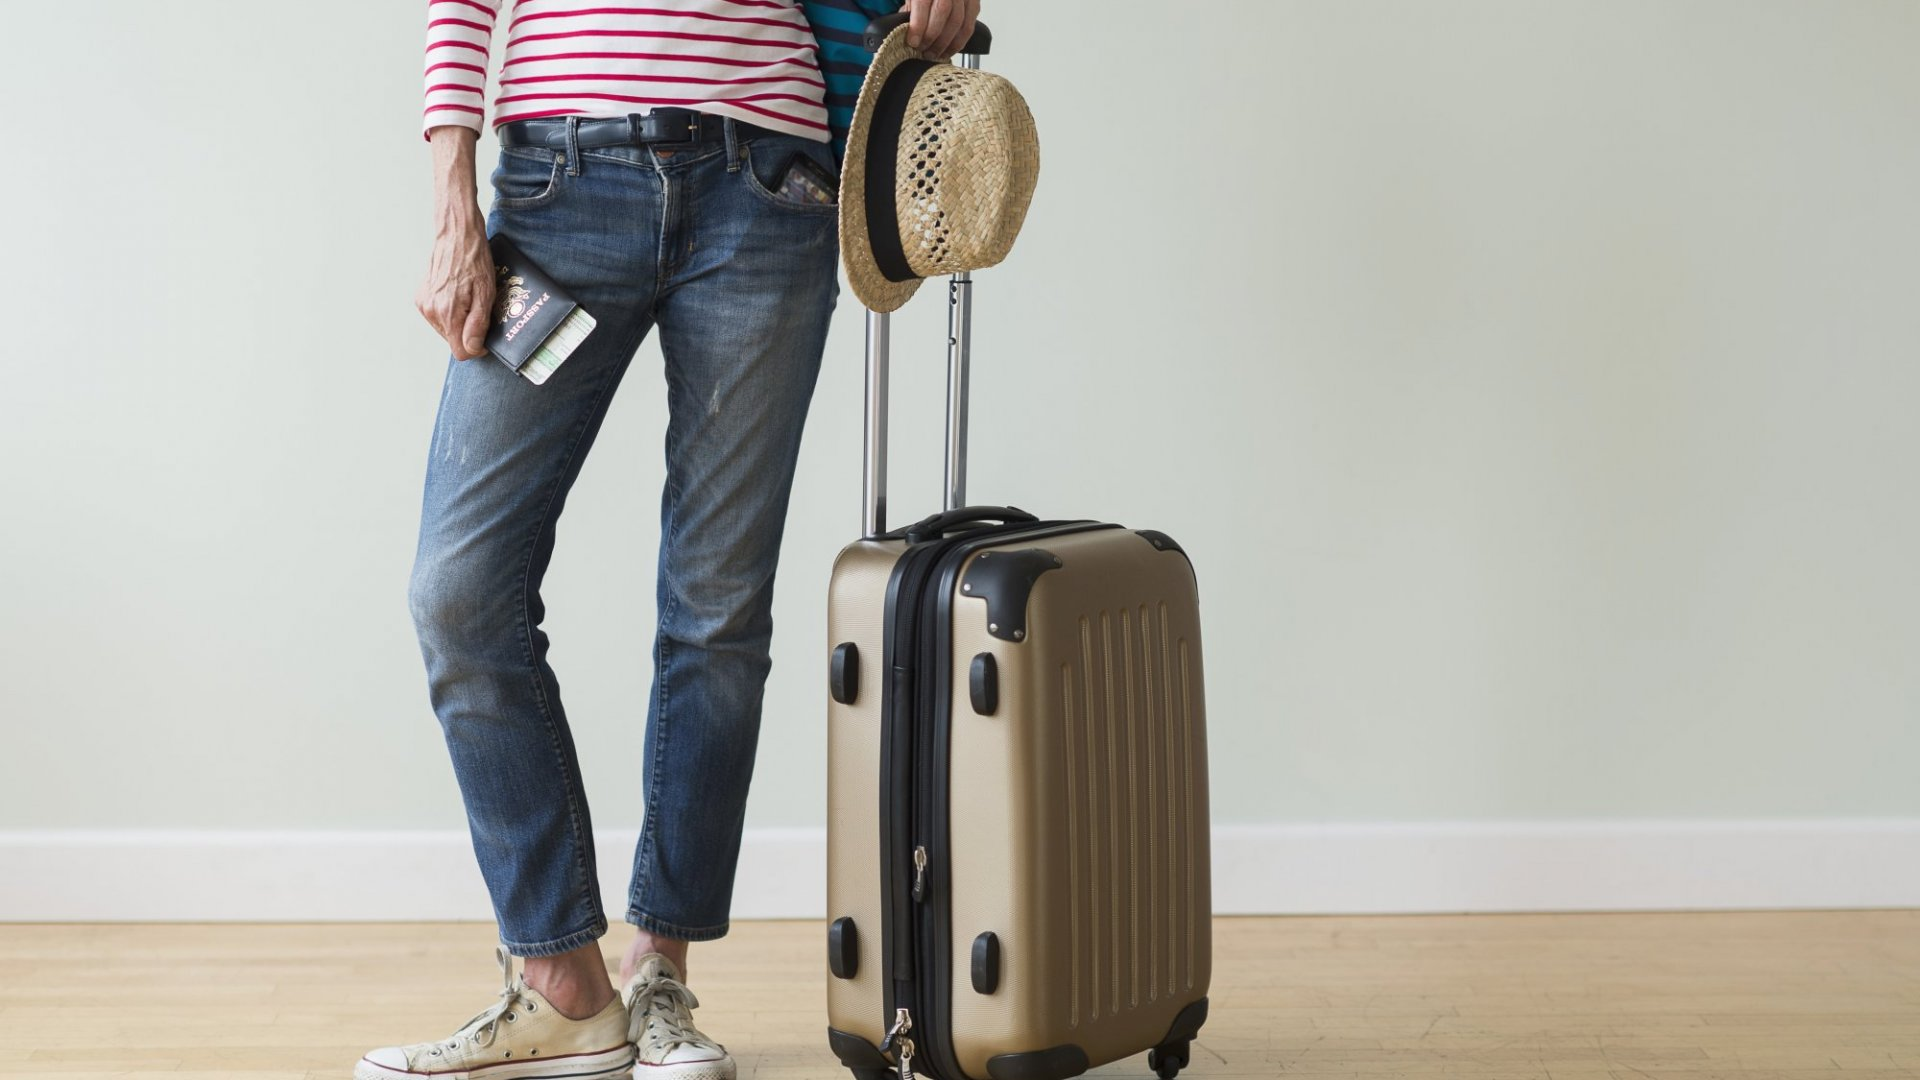 These Simple Rules Will Save You a Ton of Travel Stress